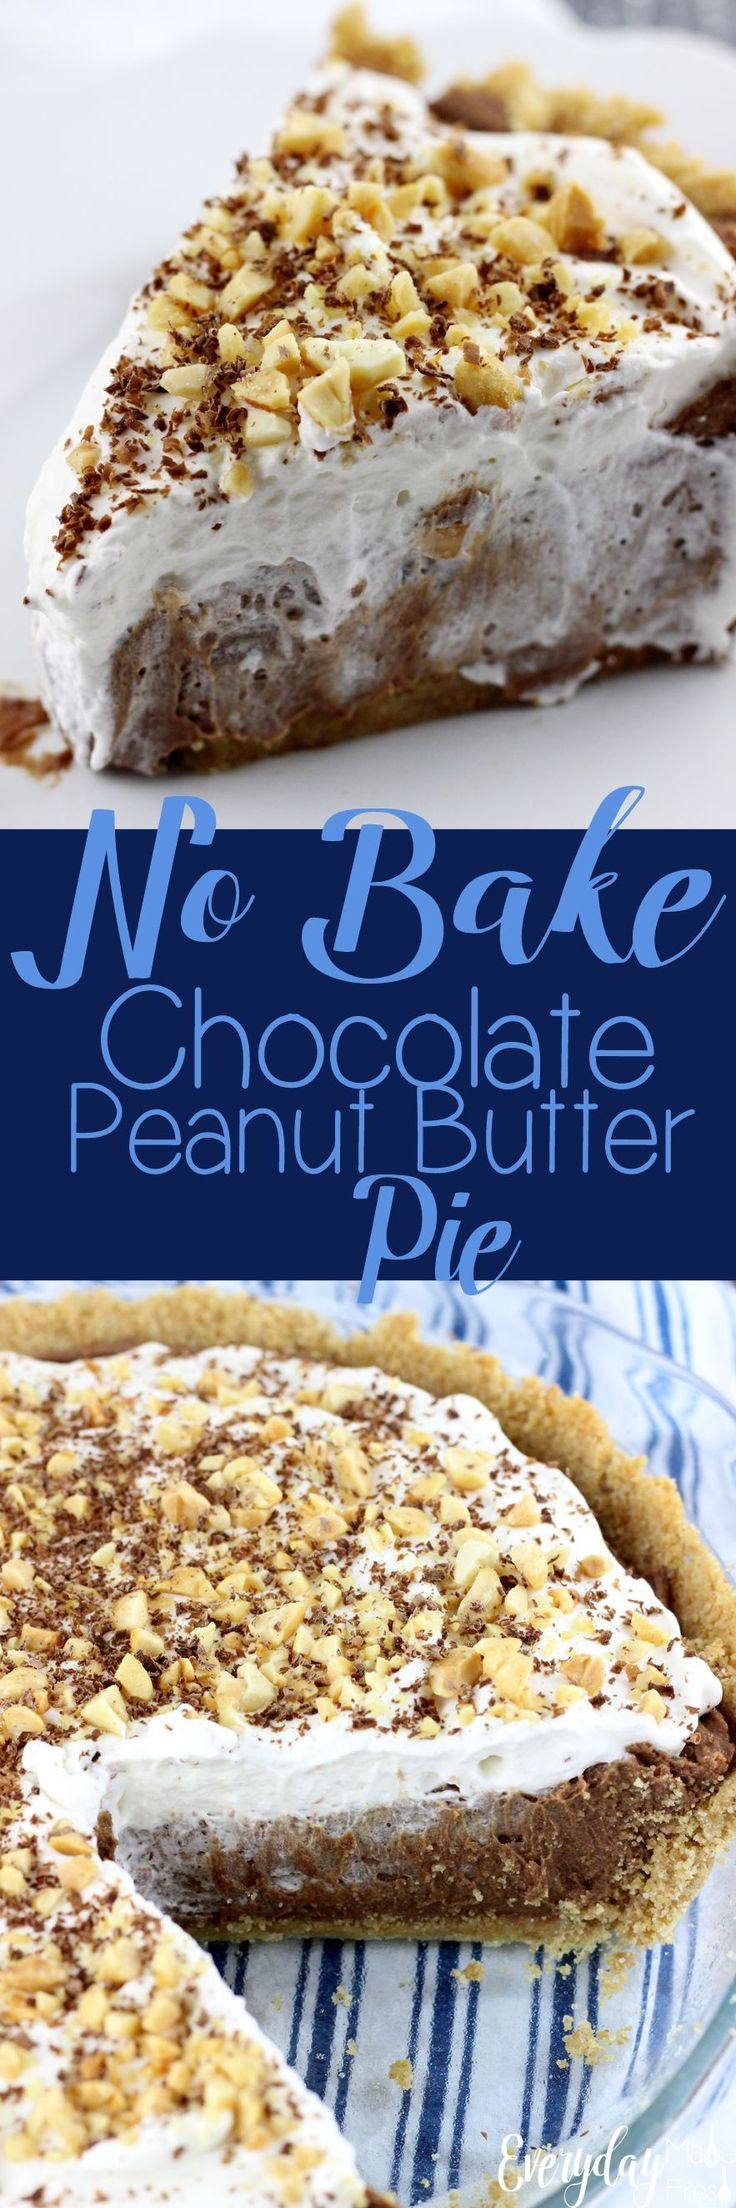 If you love peanut butter cups, this simple No Bake Chocolate Peanut Butter Pie is for you! The base is a simple homemade graham cracker crust, filled with a chocolate ganache, cream cheese, peanut butter mixture that is finger licking good! | EverydayMadeFresh.com http://www.everydaymadefresh.com/no-bake-chocolate-peanut-butter-pie/ #dessertfoodrecipes